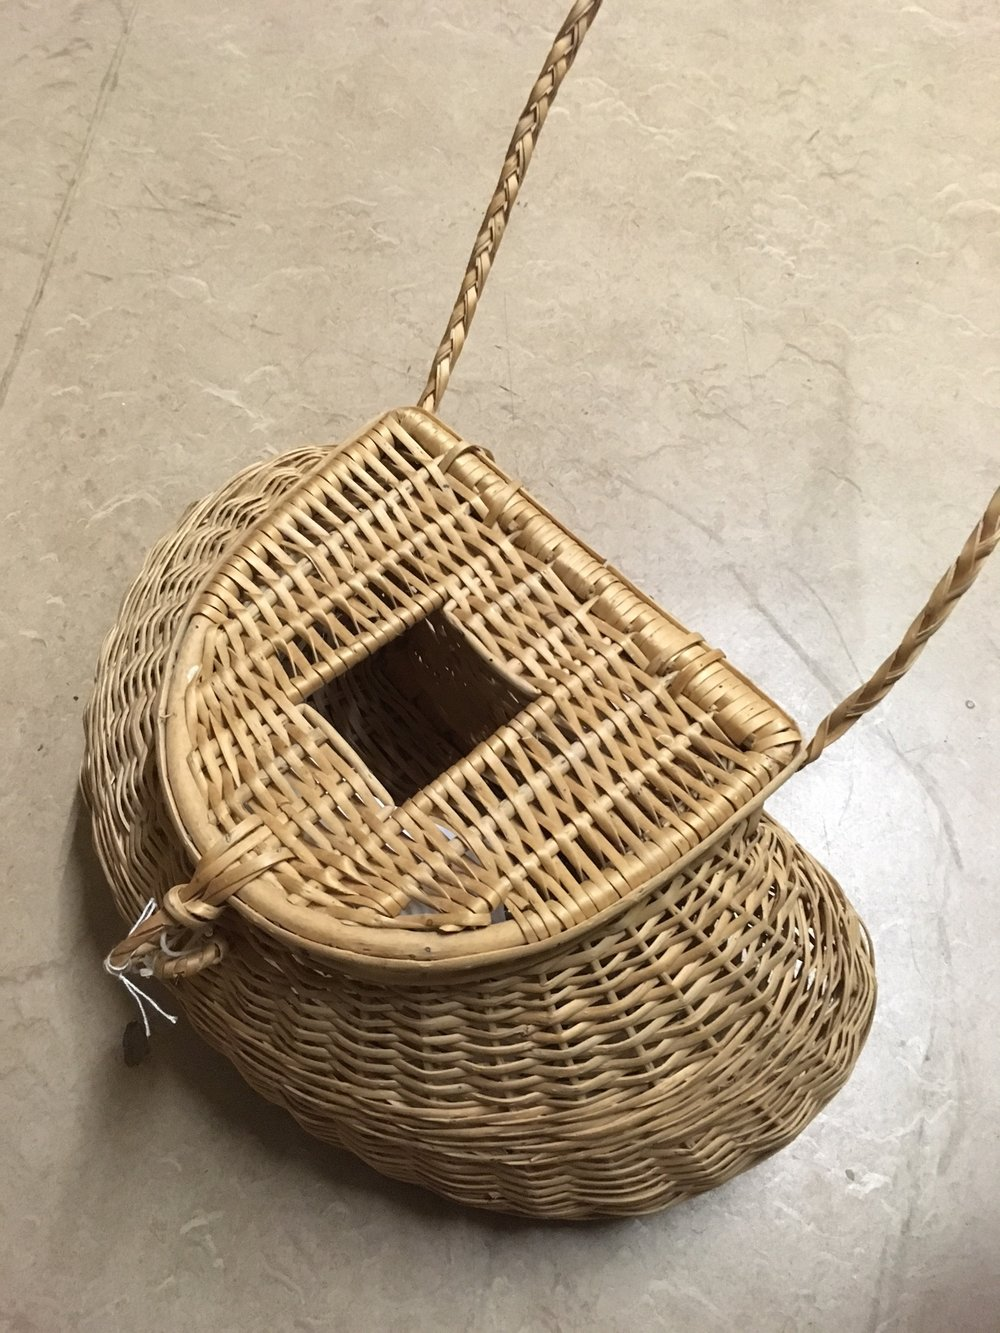 A fisherman's (mushroom) basket: Its curved shape hugs the hips for comfort.